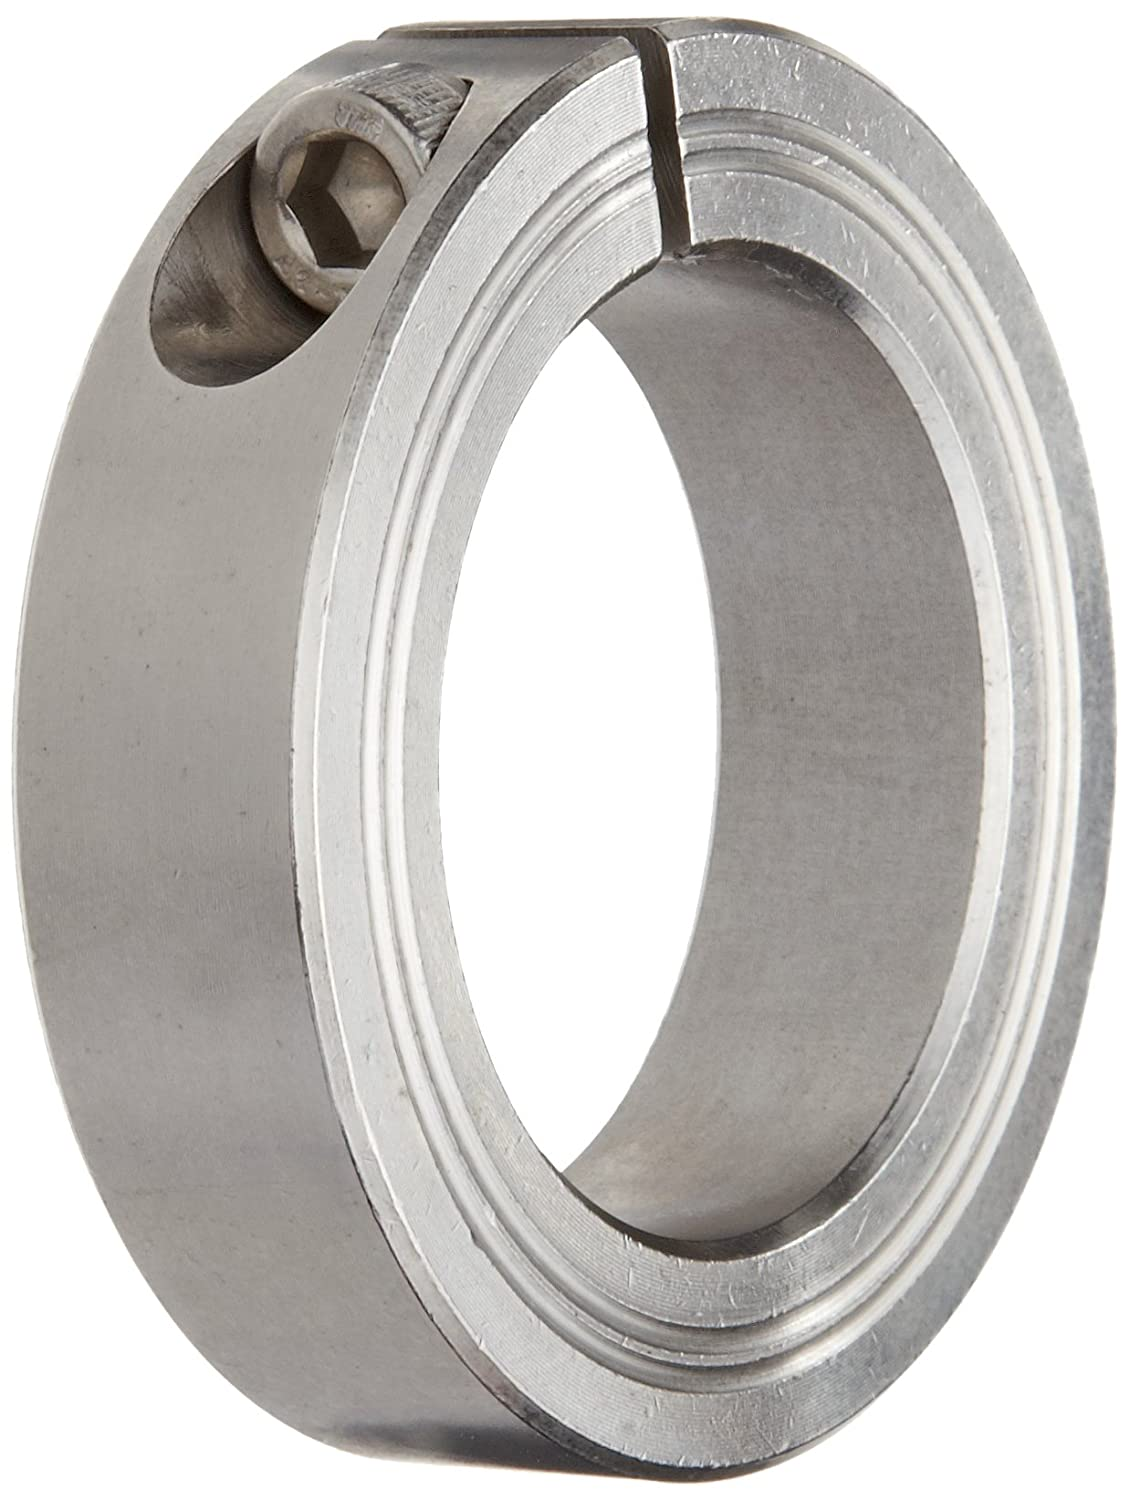 40mm OD Stainless Steel Metric 20mm Bore 15mm Width, Climax Metal M2C-20-S Two-Piece Clamping Collar